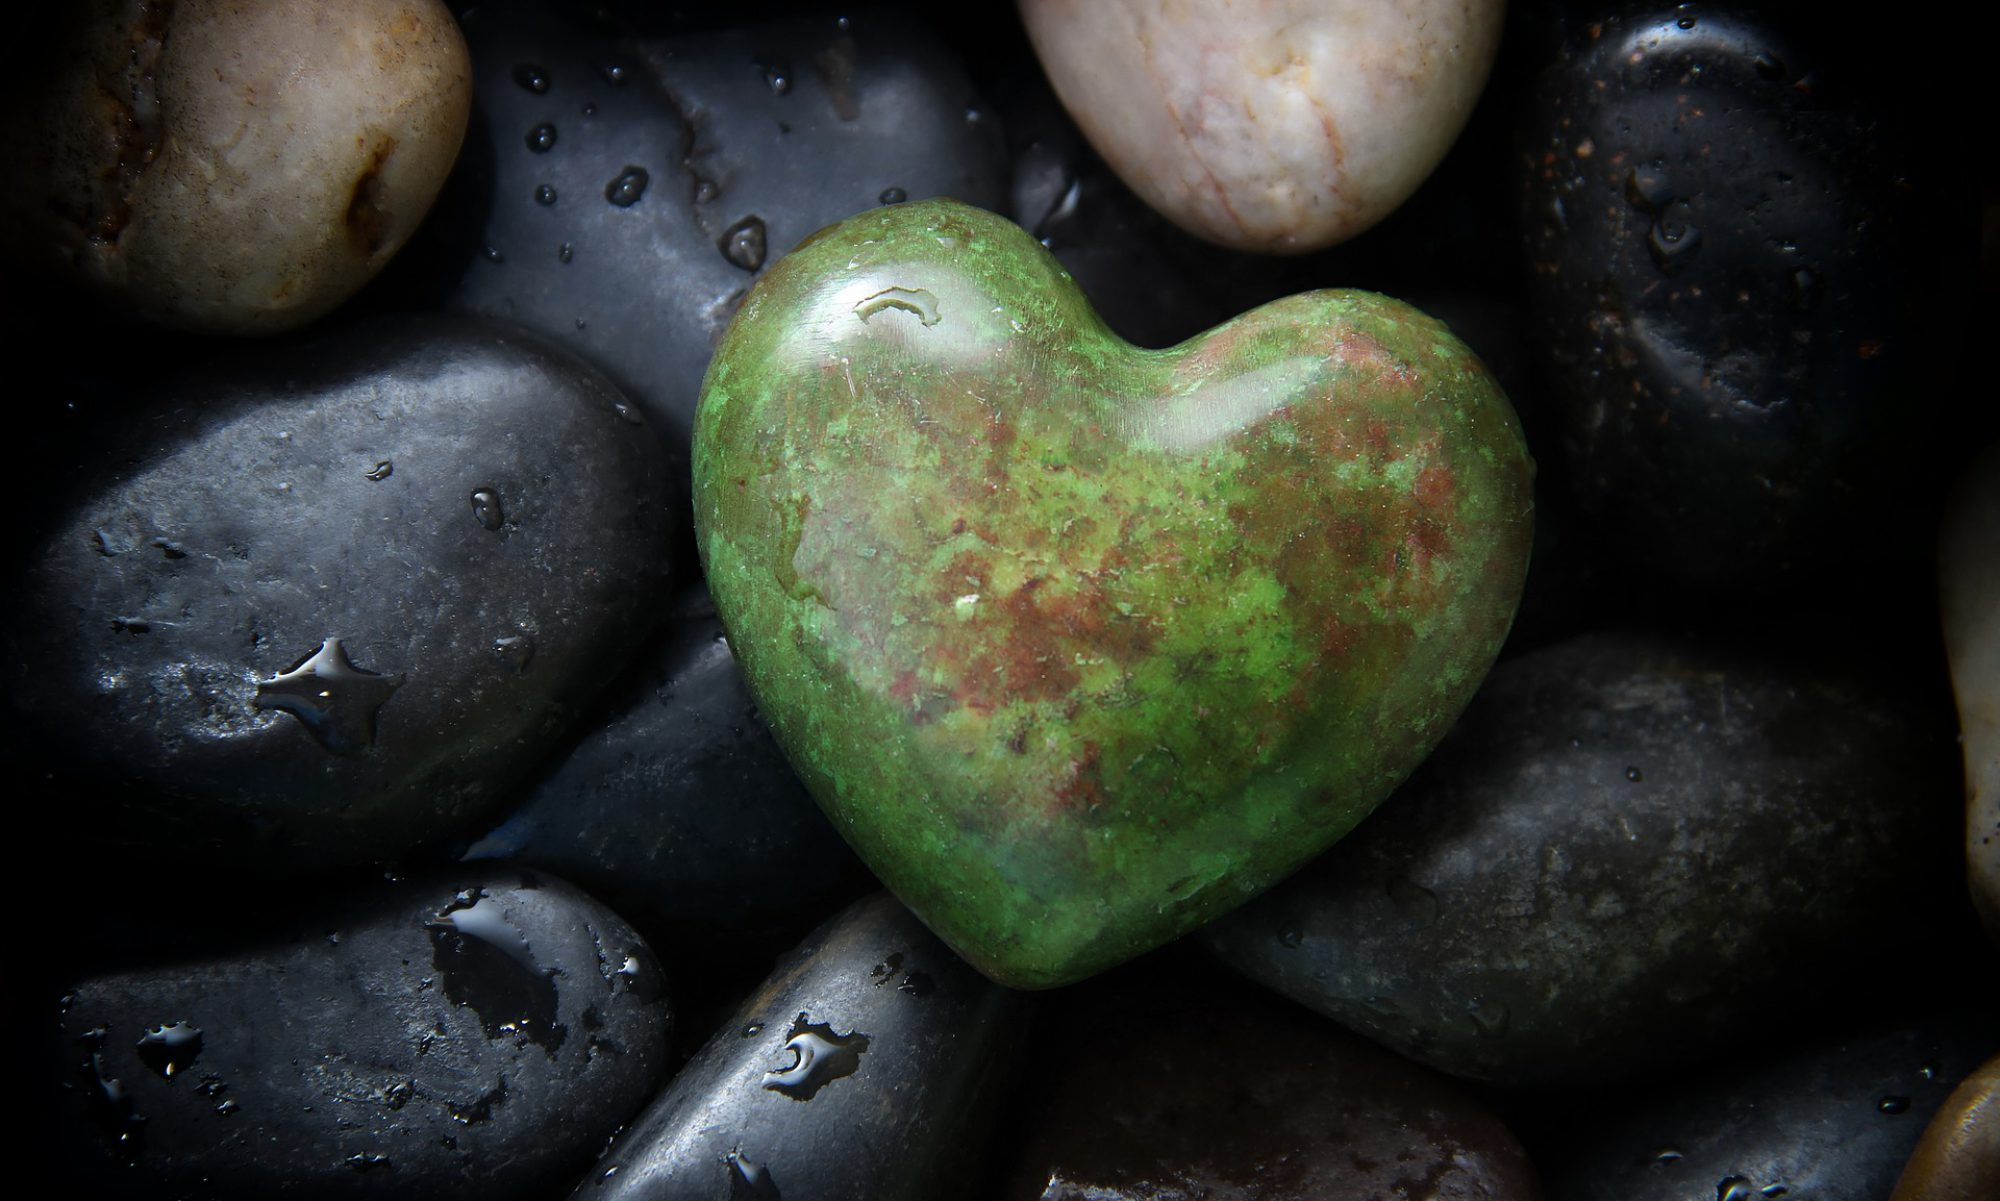 The open Green Heart